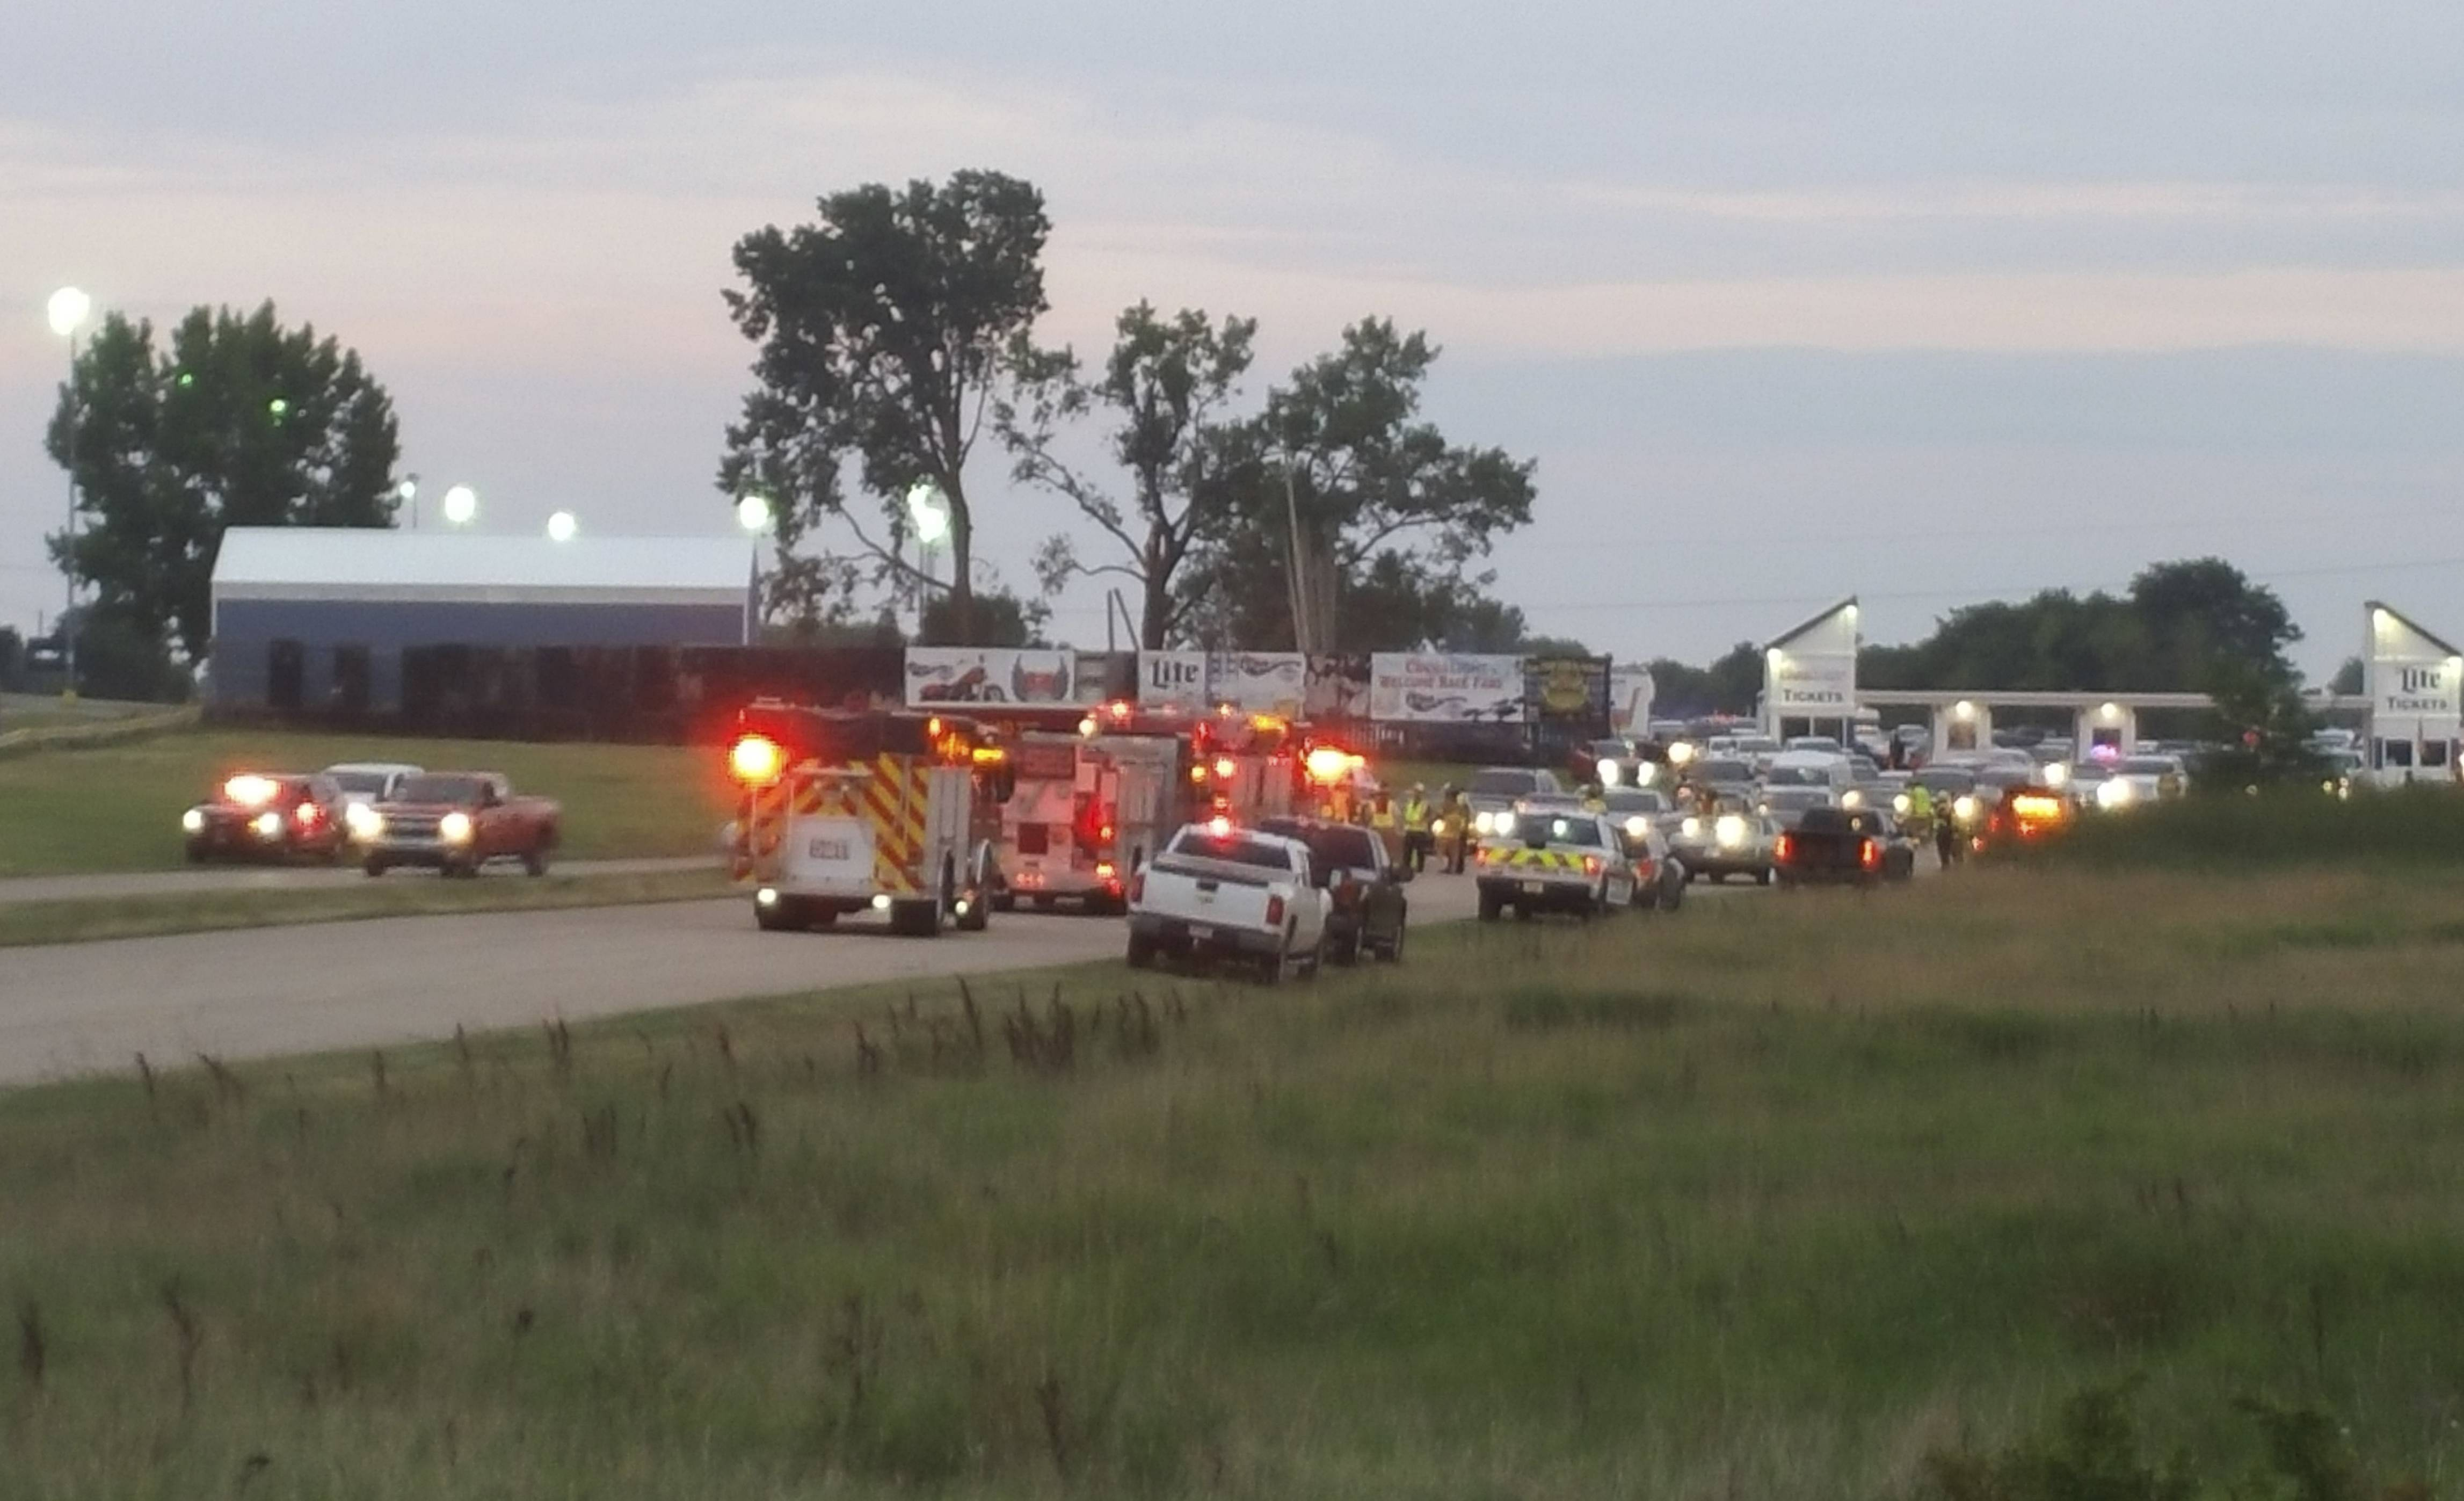 Emergency response vehicles gather Sunday at Great Lakes Dragway near Union Grove, Wisconsin. Three men were shot and killed during an auto racing event at the facility, authorities said.